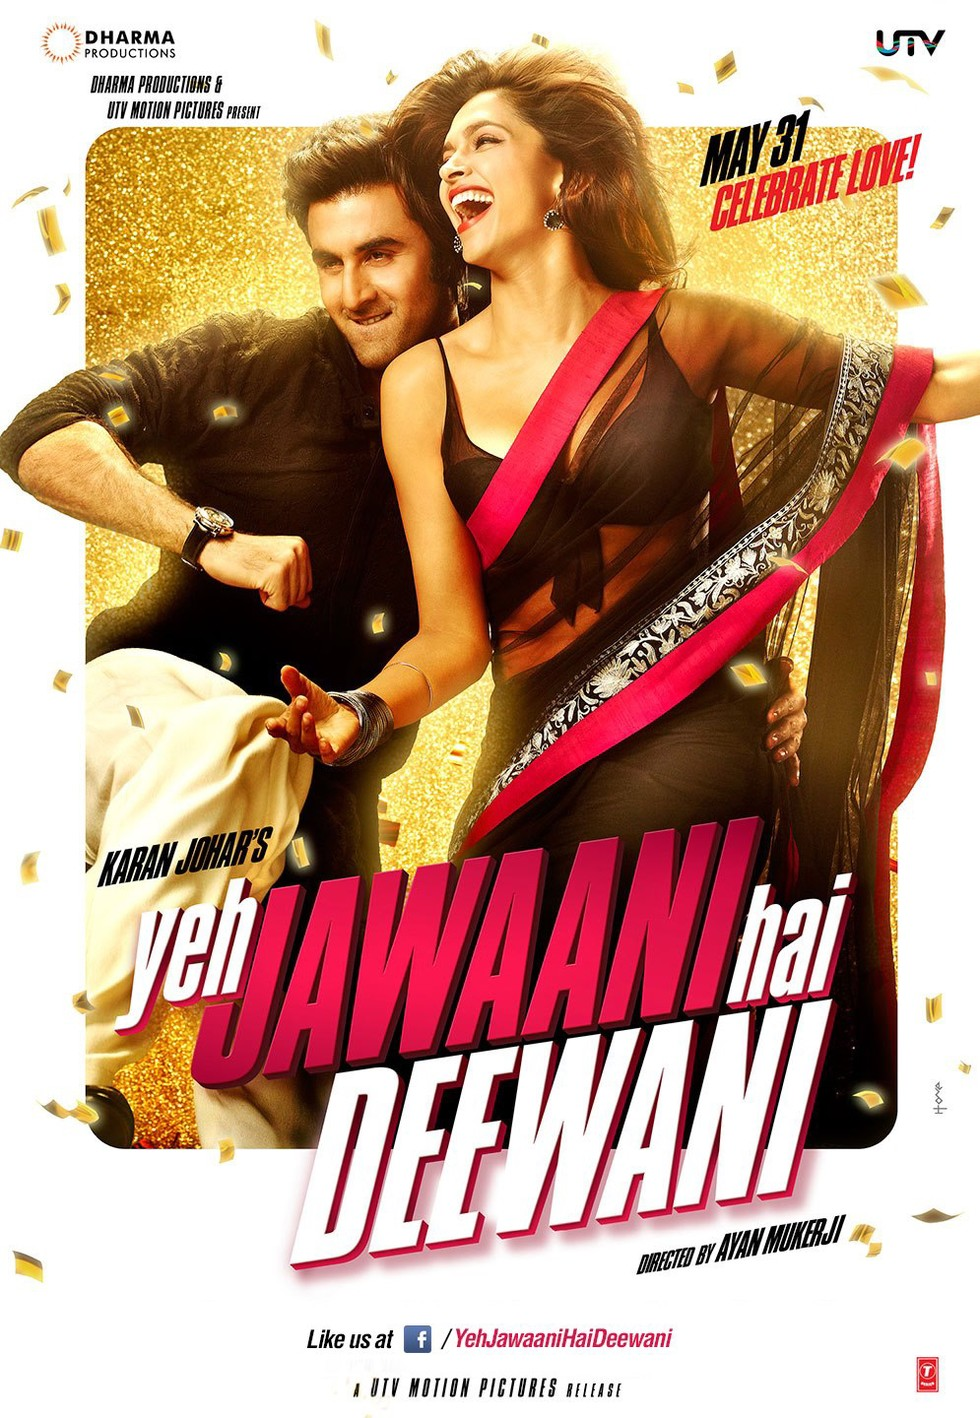 Yeh Jawaani Hai Deewani - Movie Poster #1 (Large)